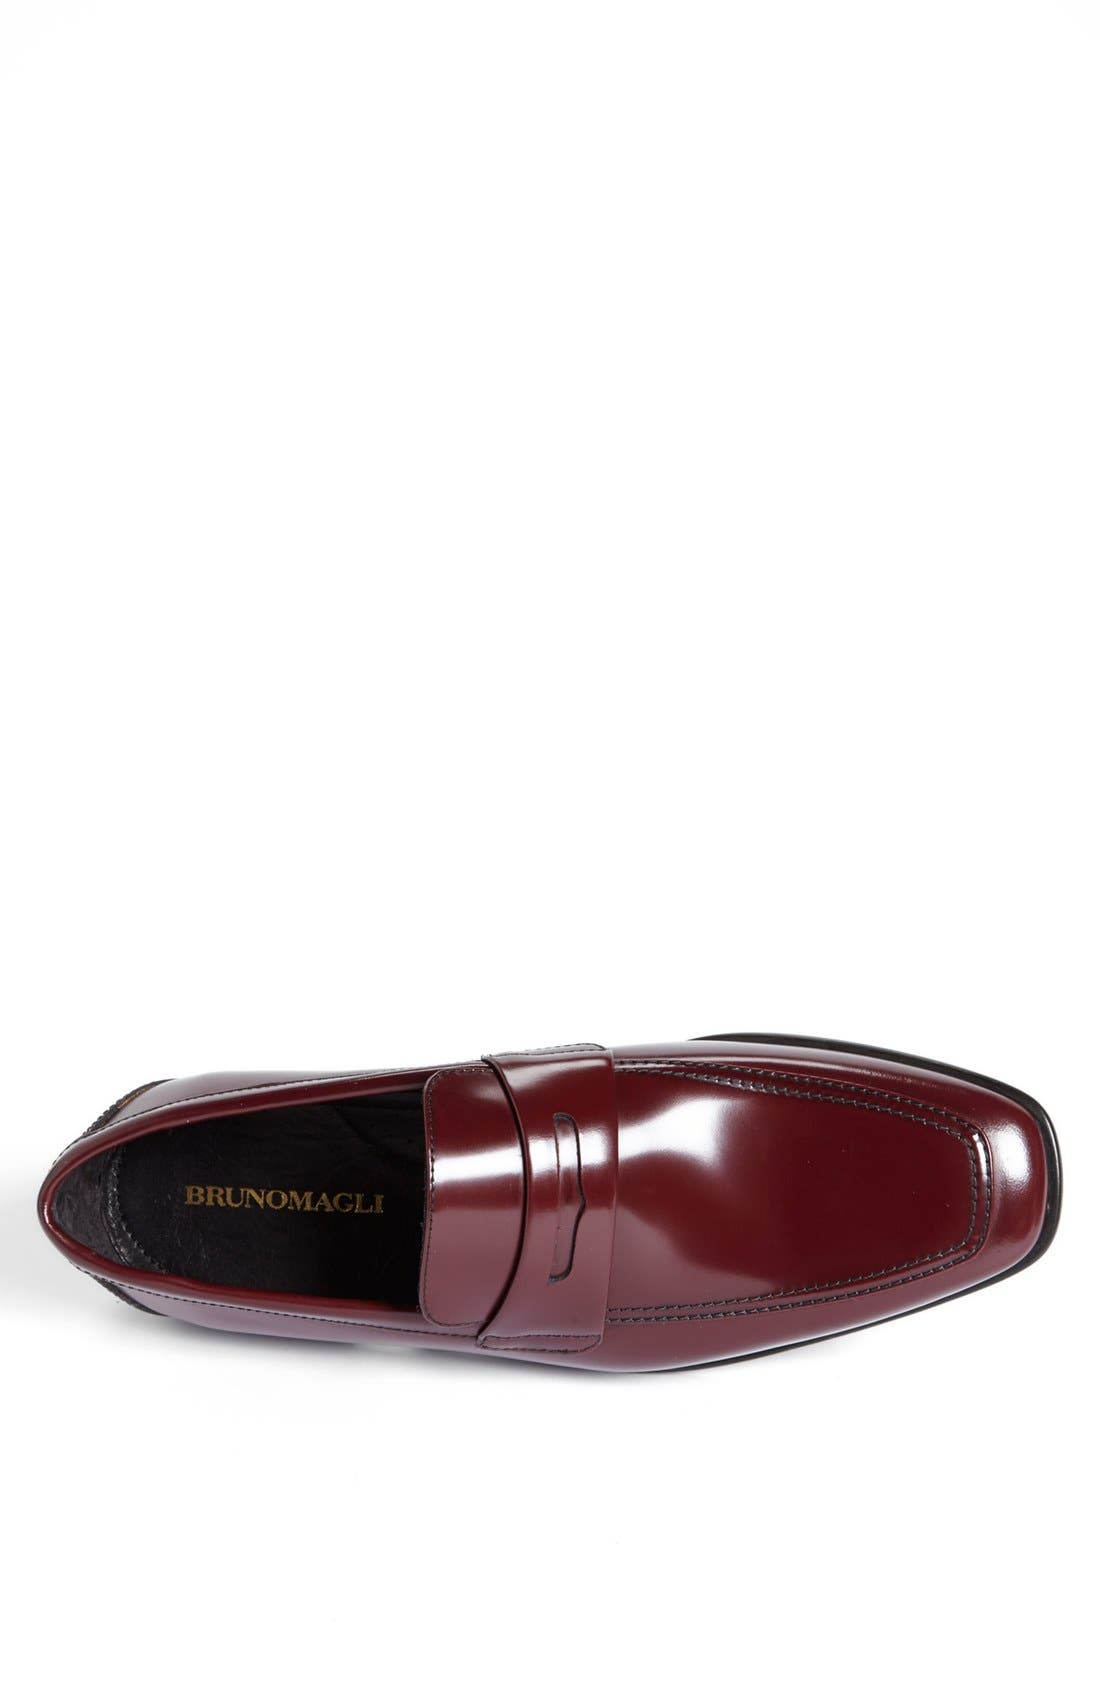 Alternate Image 3  - Bruno Magli 'Millonia' Penny Loafer